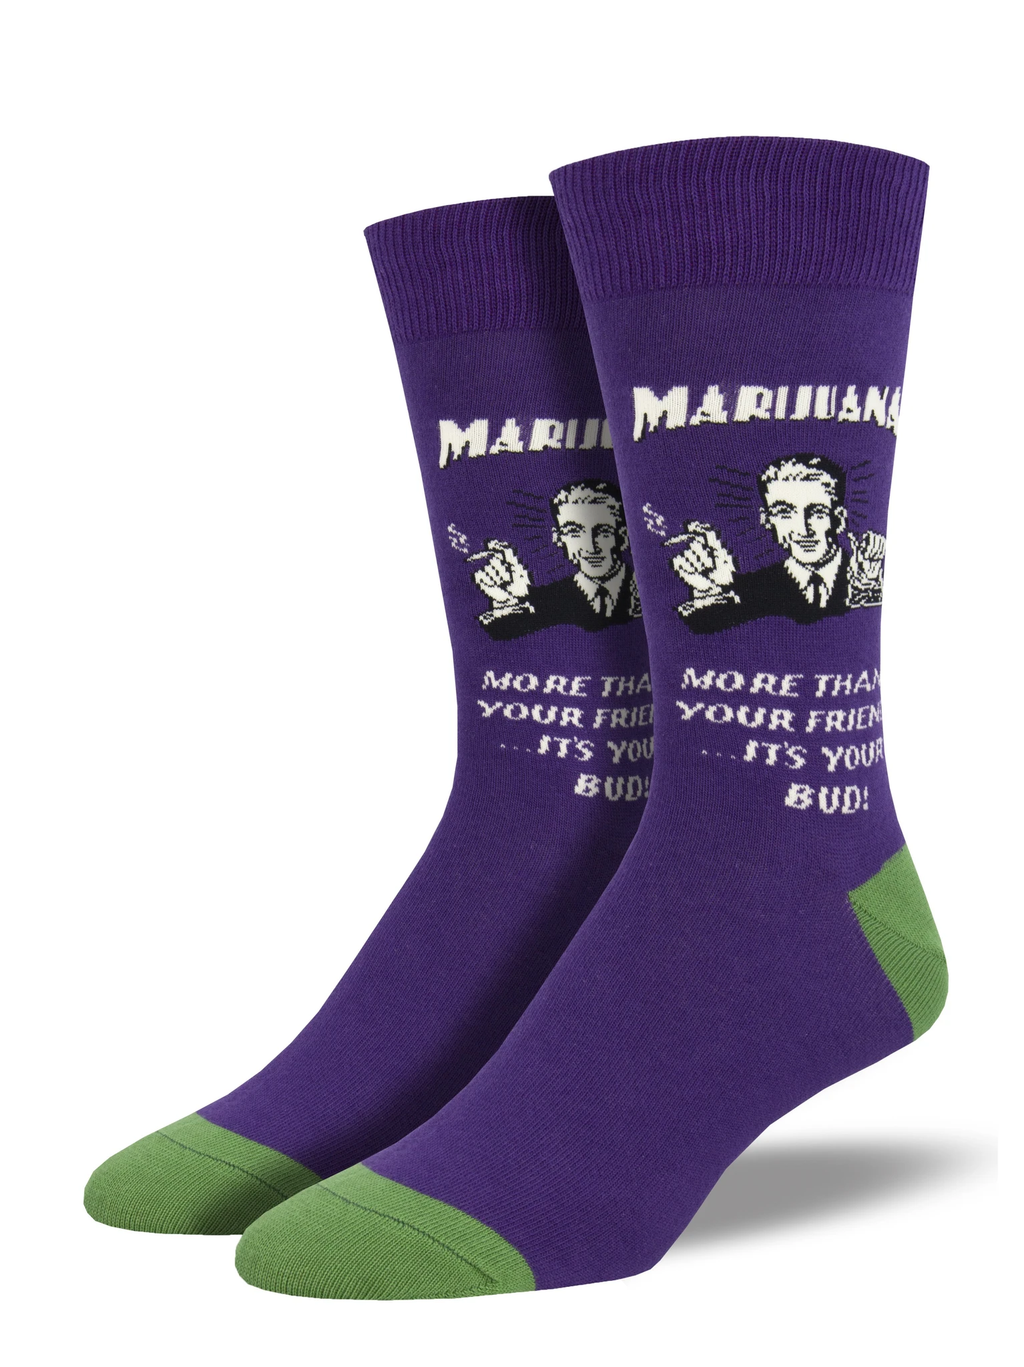 Best Buds Purple Men's Socks